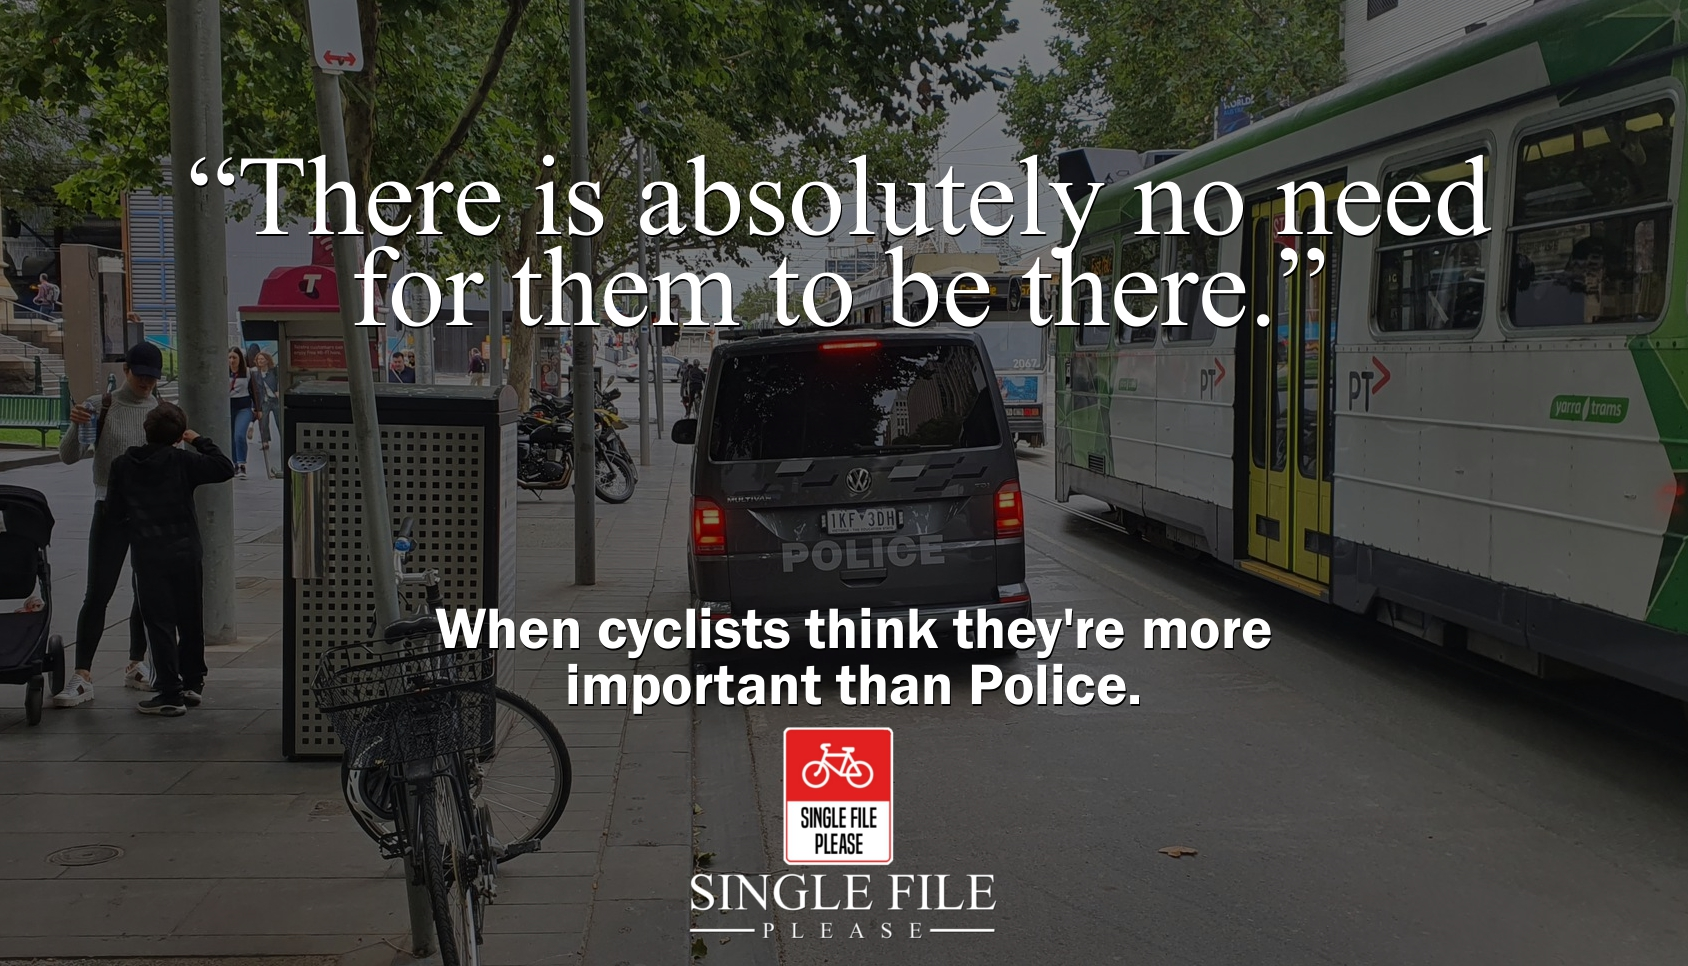 When cyclists think they're more important than police.